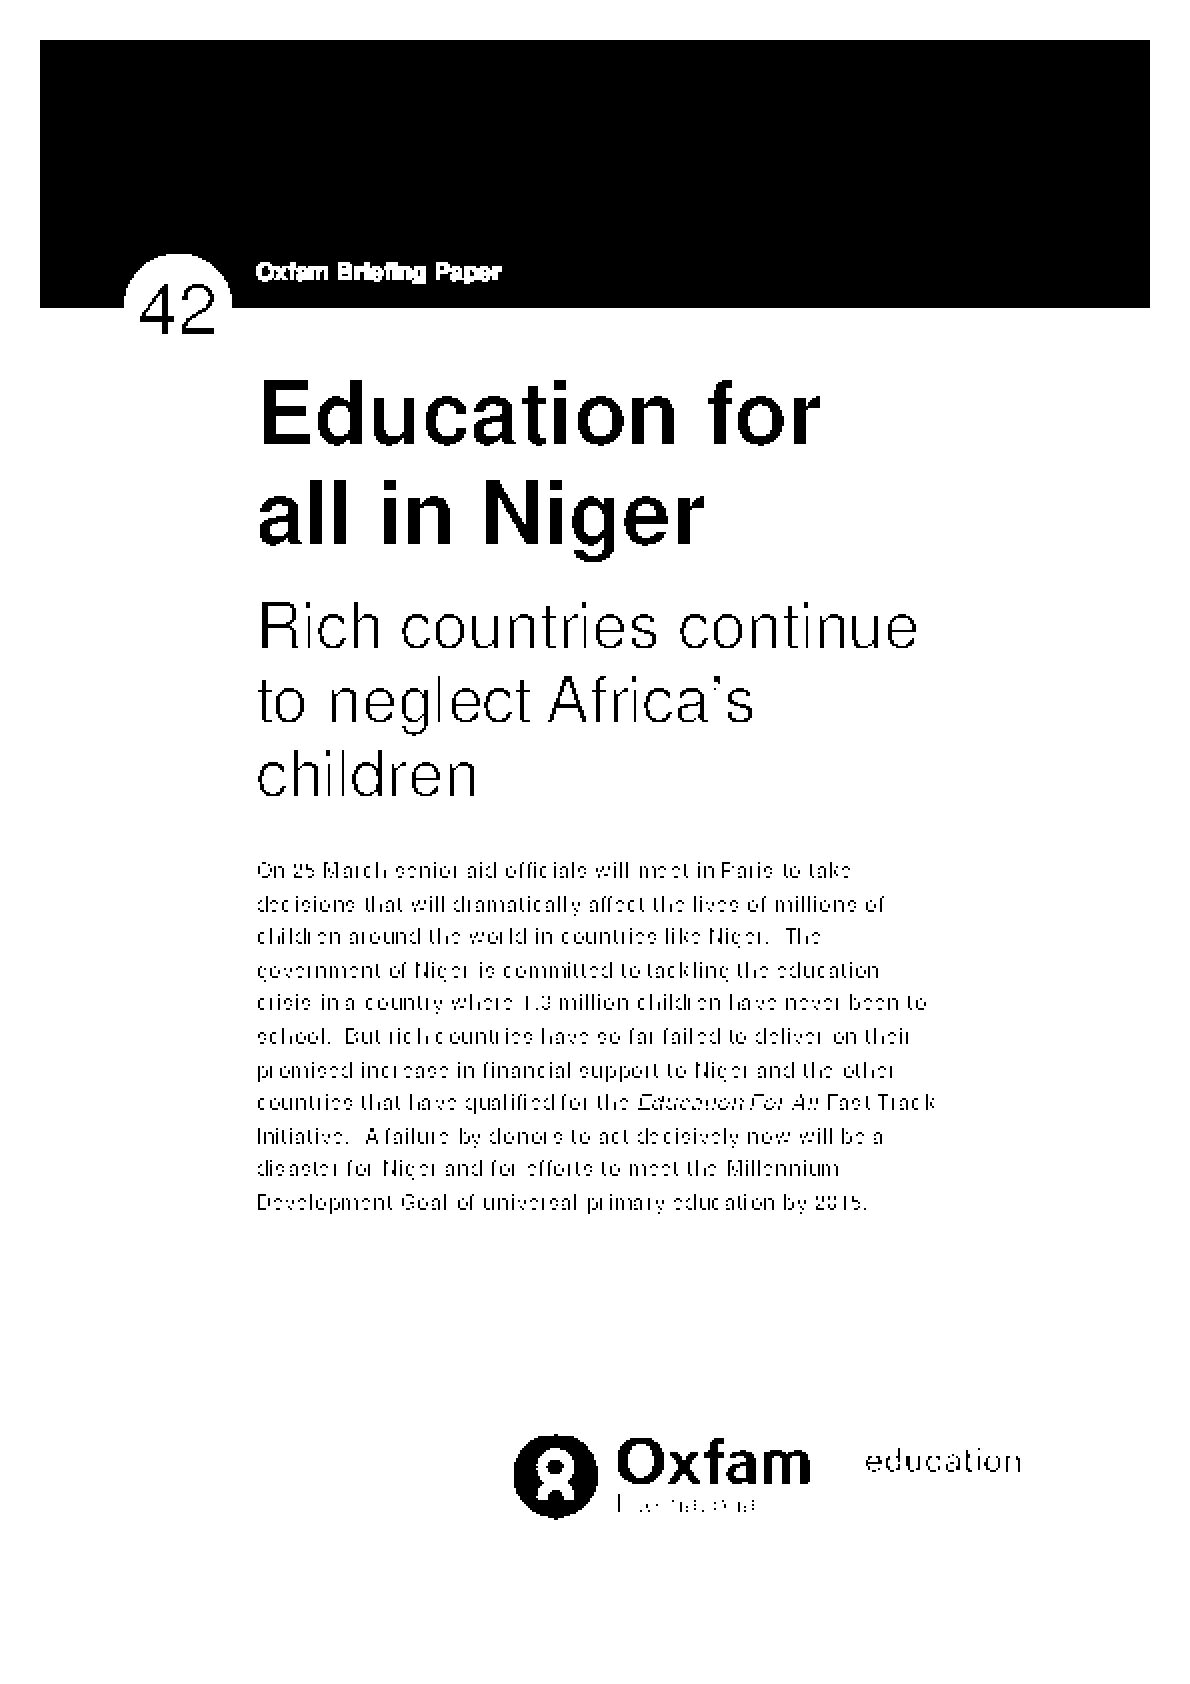 Education for all in Niger: Rich countries continue to neglect Africa's children